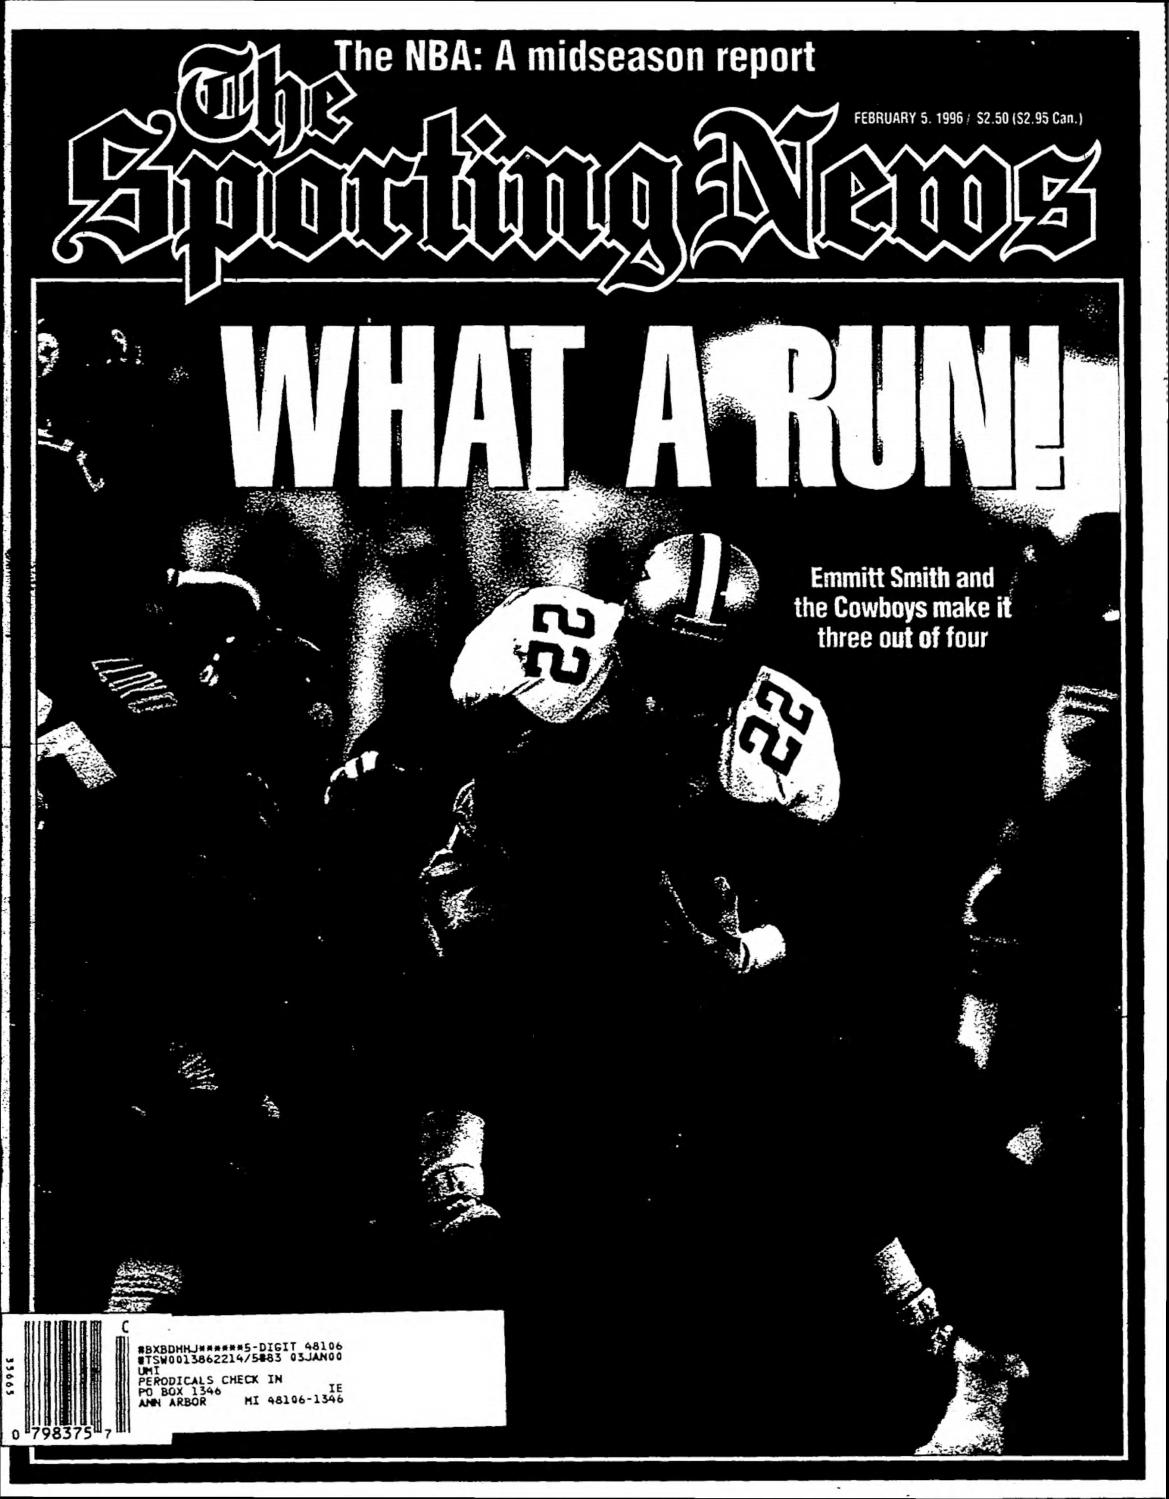 The sporting news 02 05 1996 by Mexico Sports Collectibles - issuu